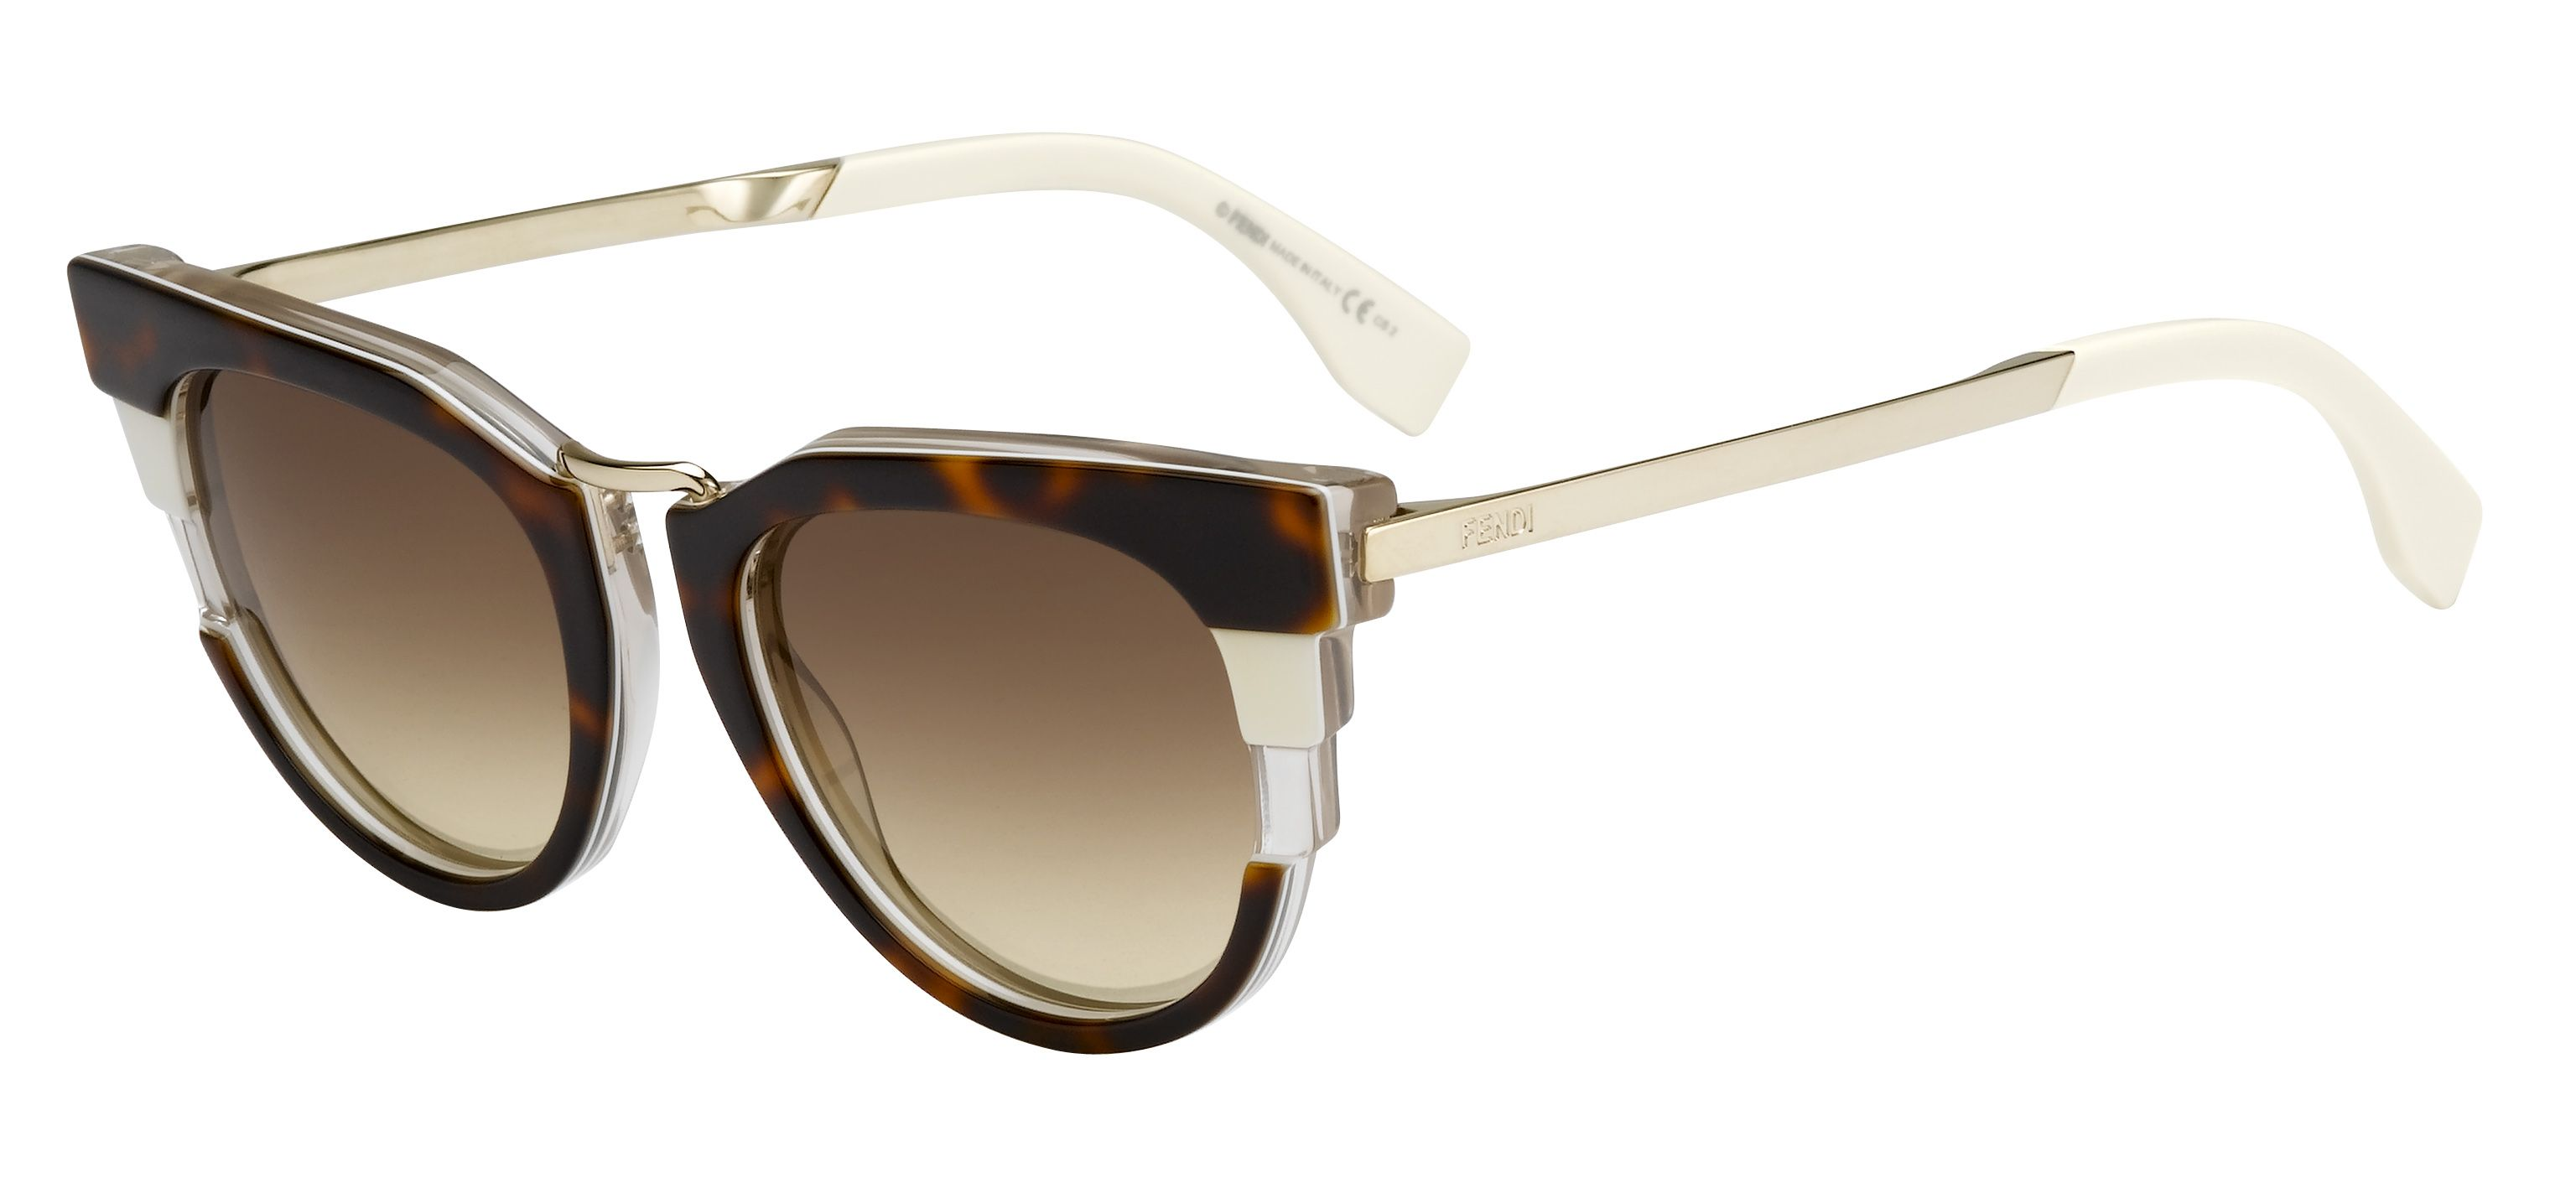 1bb7a1575574b The Fendi Fall Winter 2014-15 Metropolis sunglasses